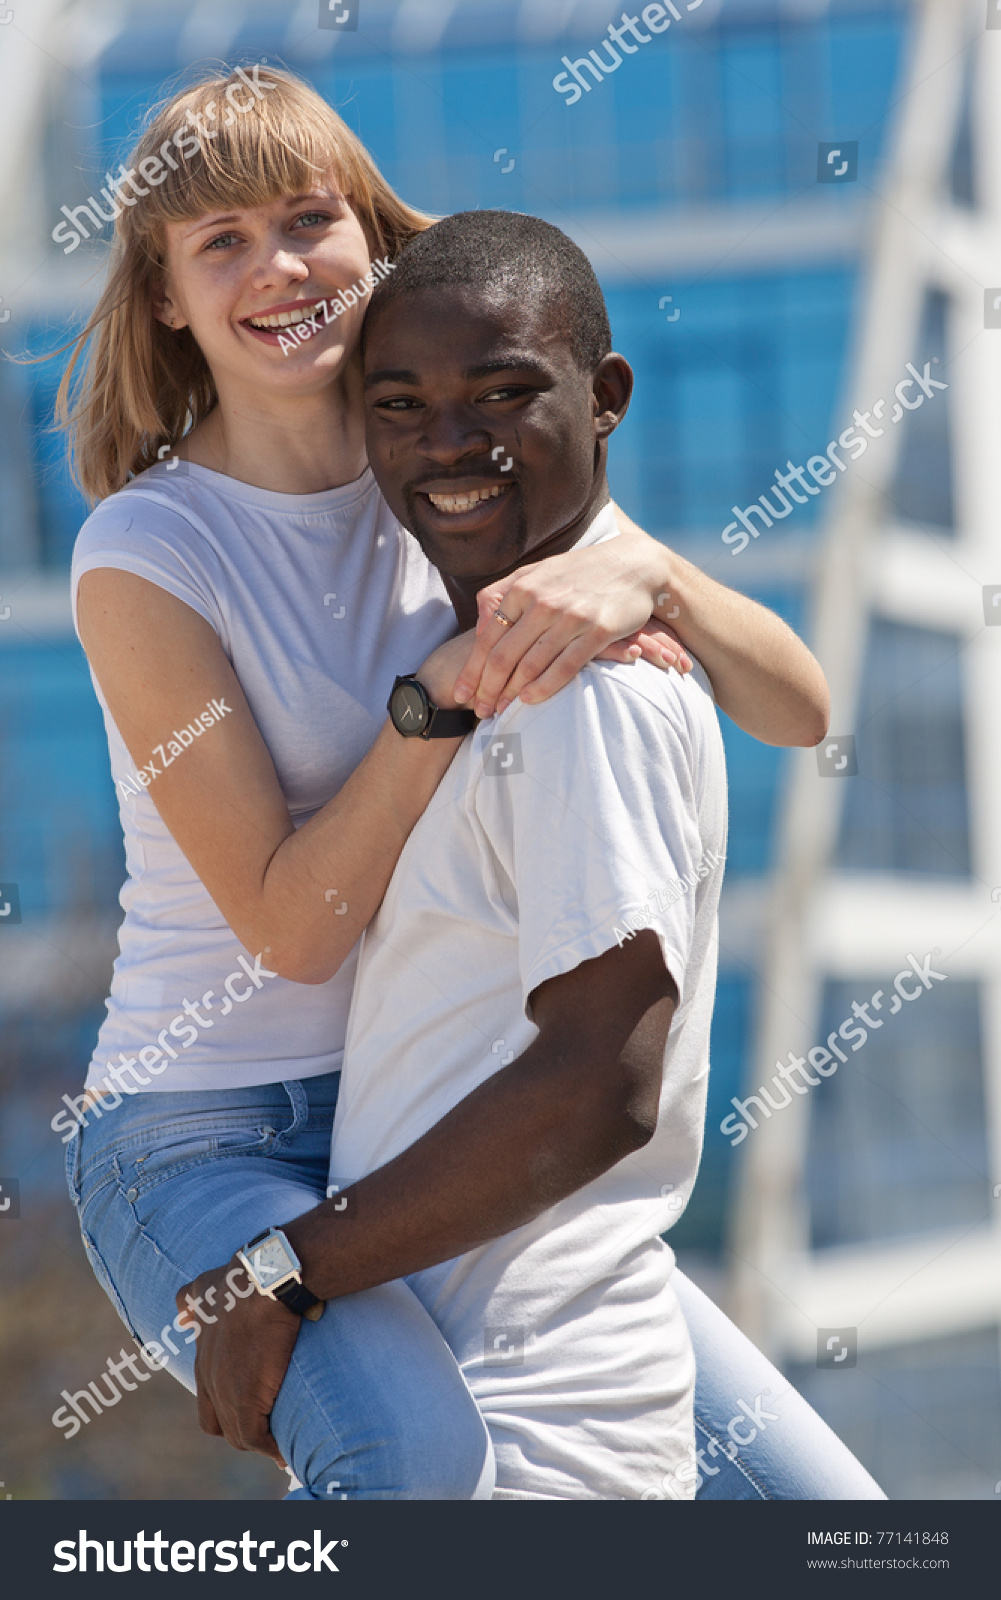 Movie where white girl dancer dating a black guy